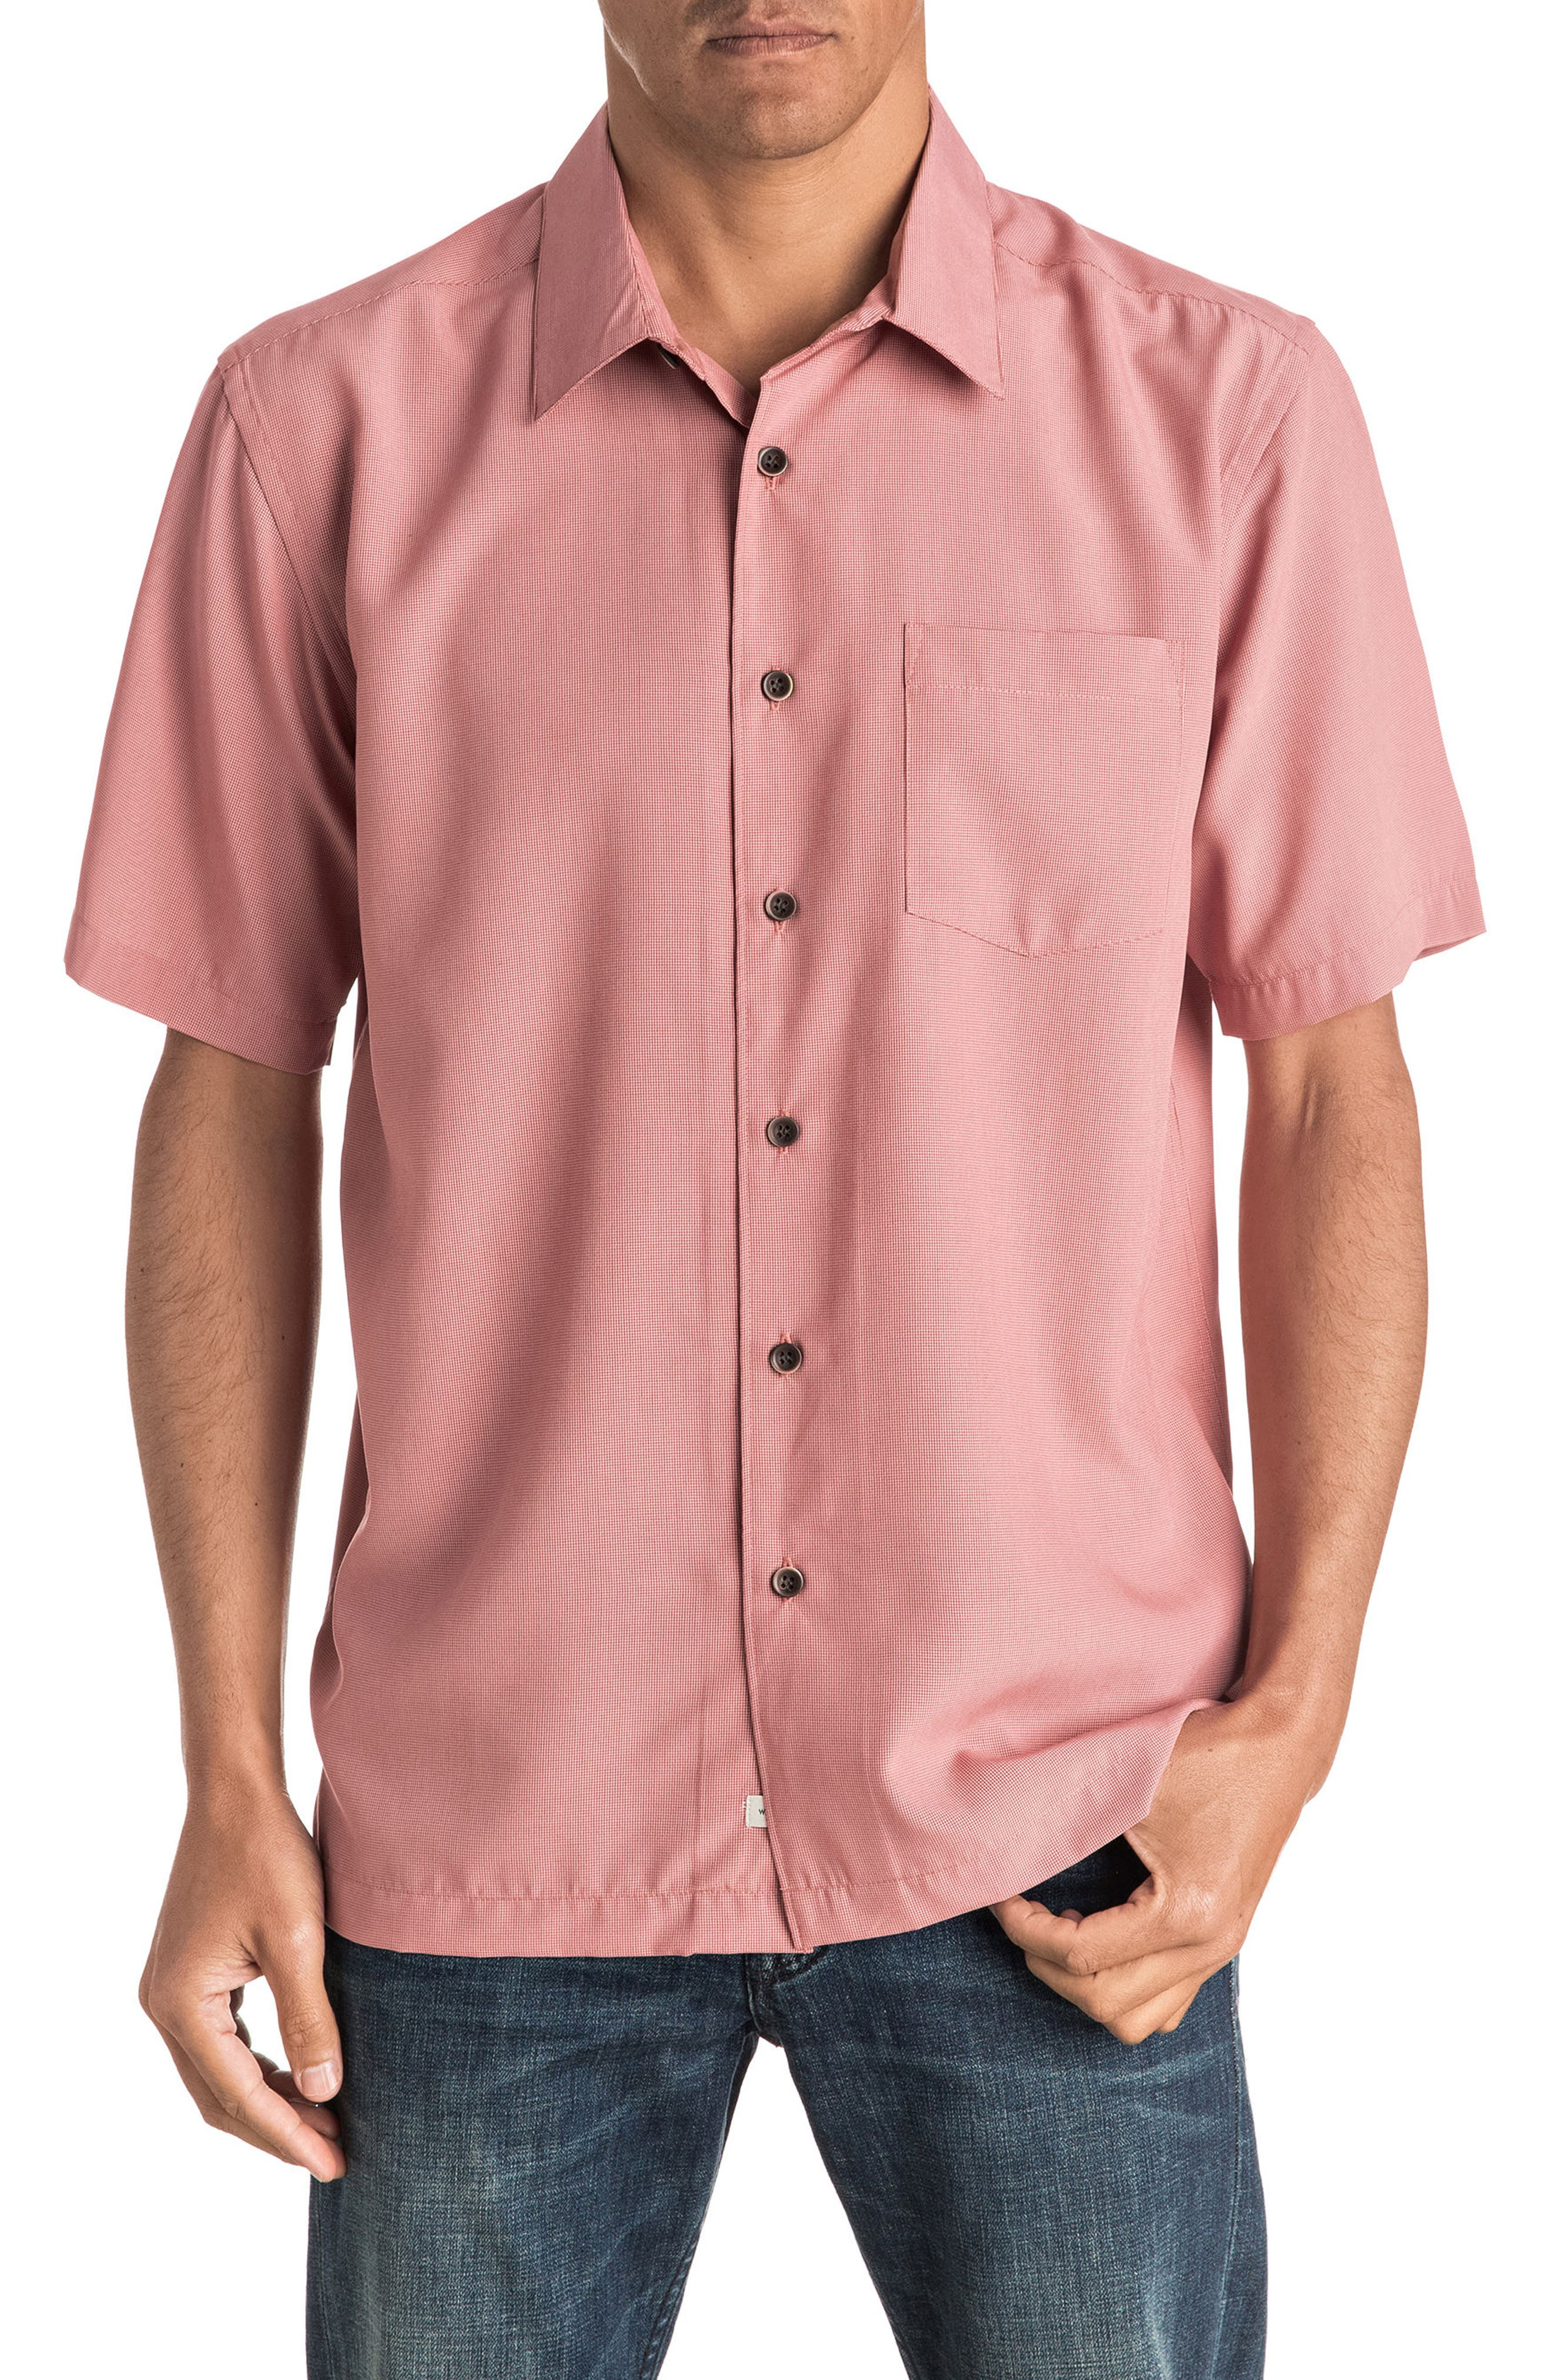 Quiksilver Waterman Collection 'Cane Island' Regular Fit Short Sleeve Sport Shirt